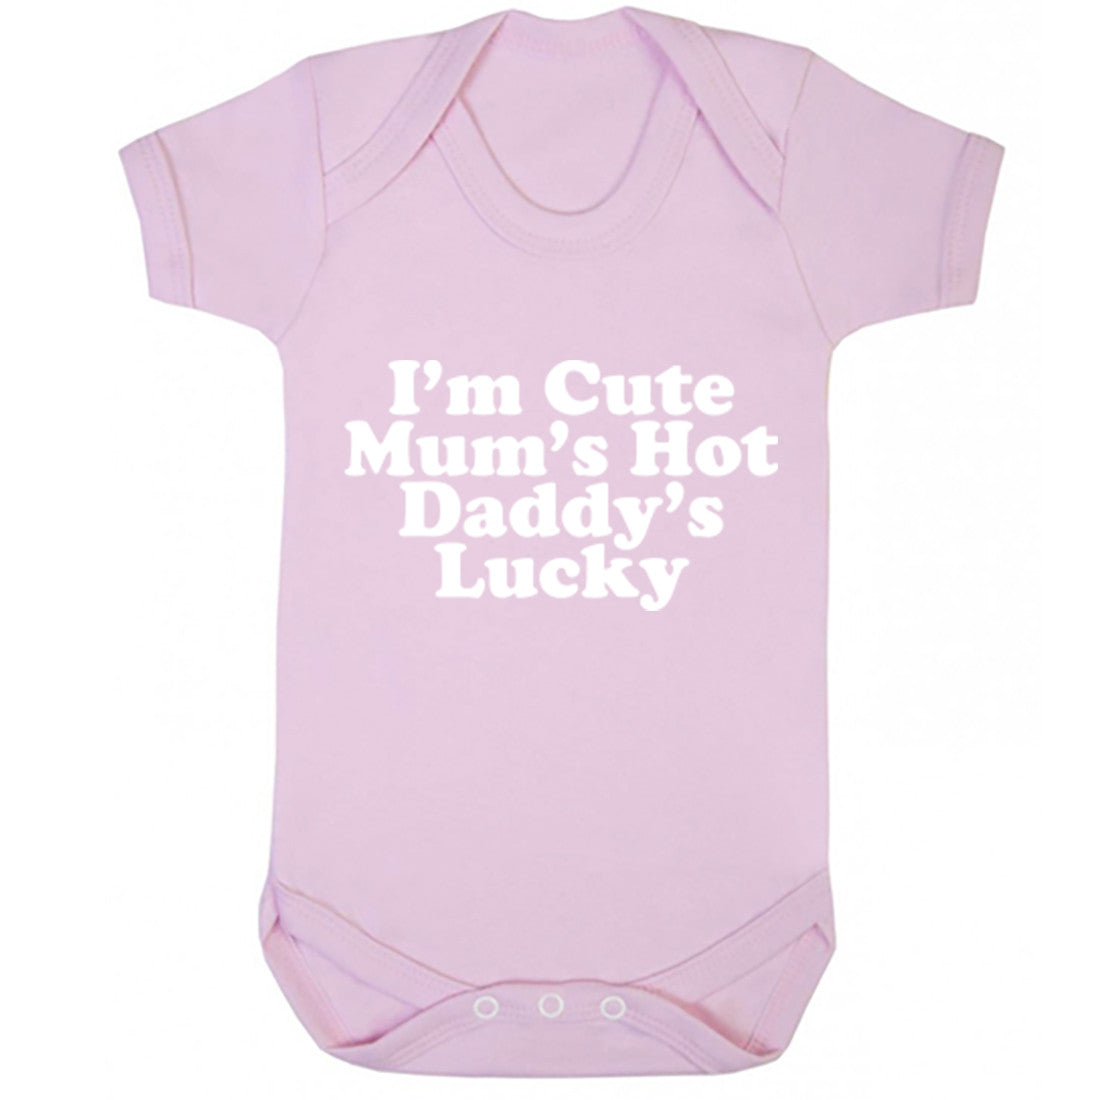 I'm Cute Mum's Hot Daddy's Lucky Baby Vest K1671 - Illustrated Identity Ltd.